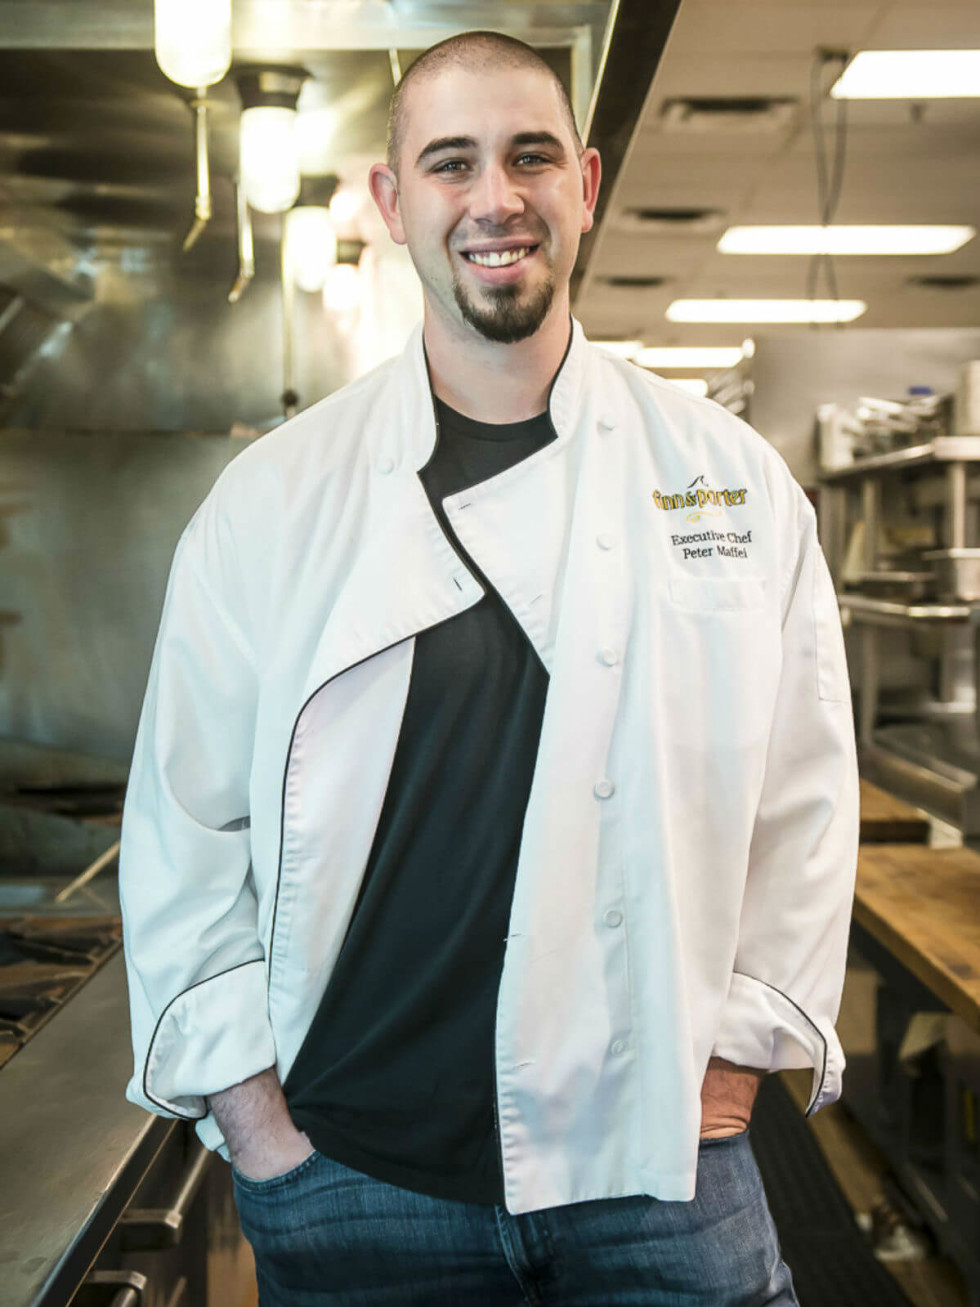 Chef Peter Maffei